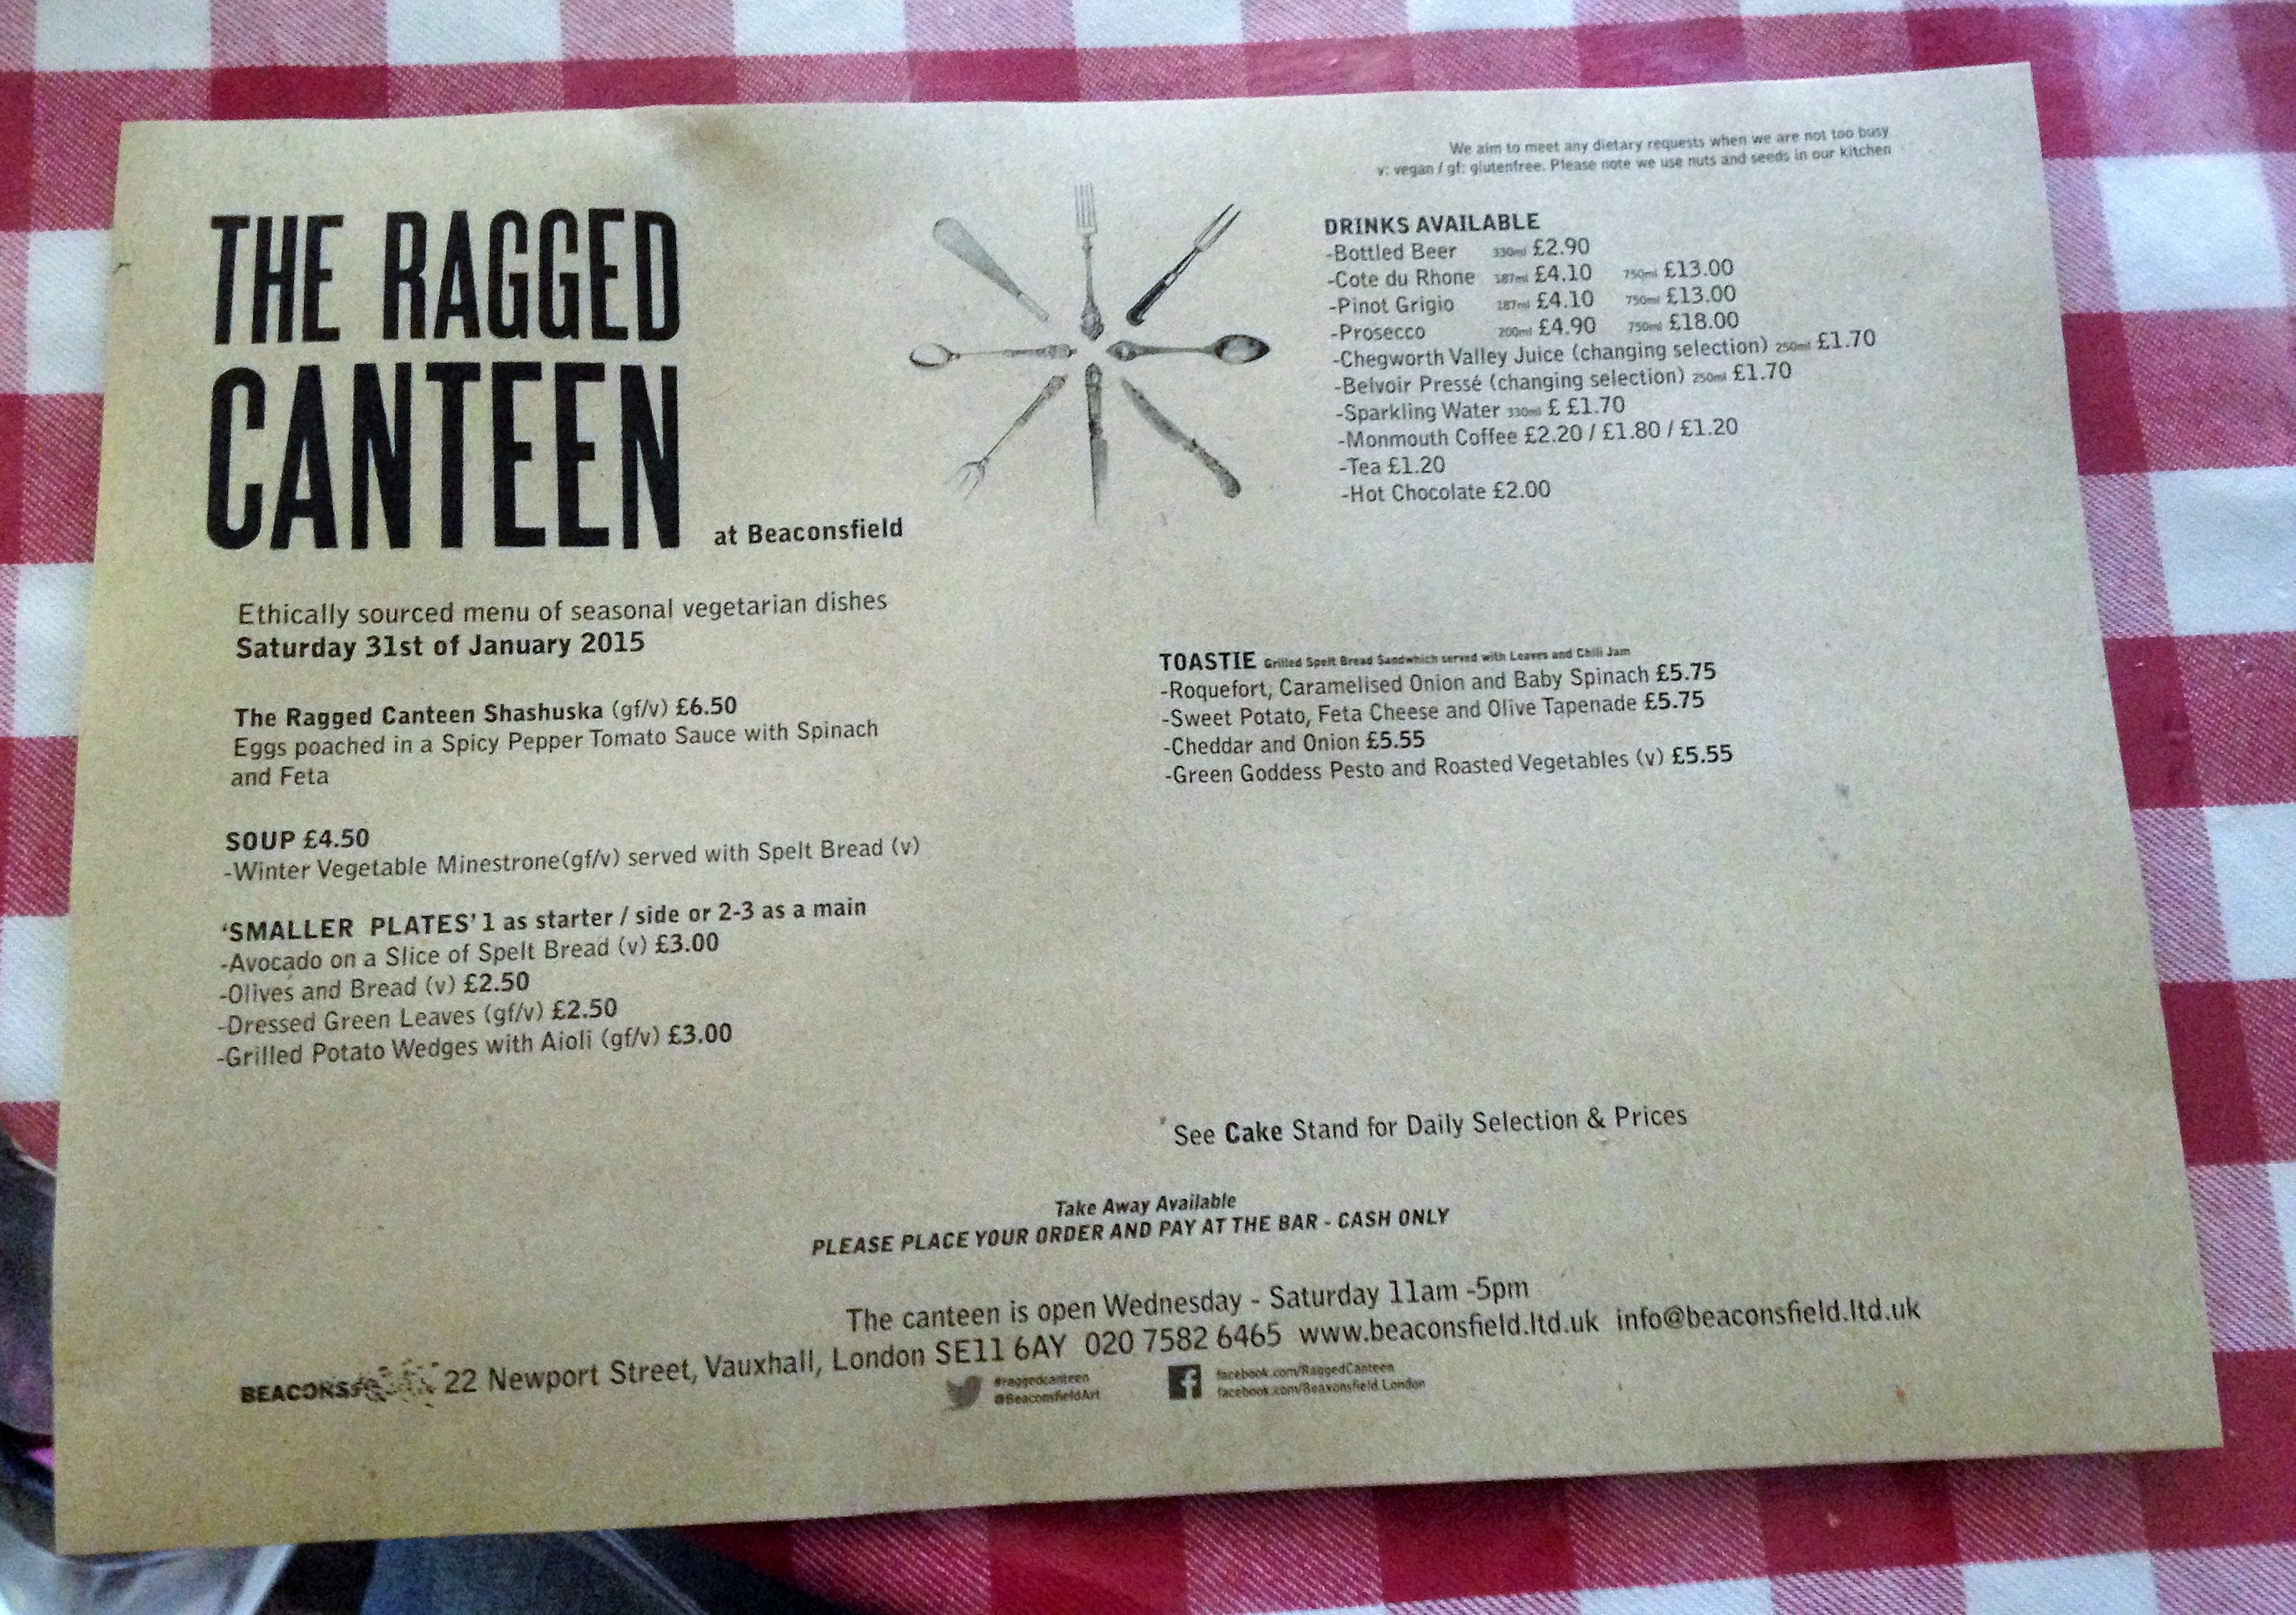 The Ragged Canteen Saturday brunch menu - kenningtonrunoff.com